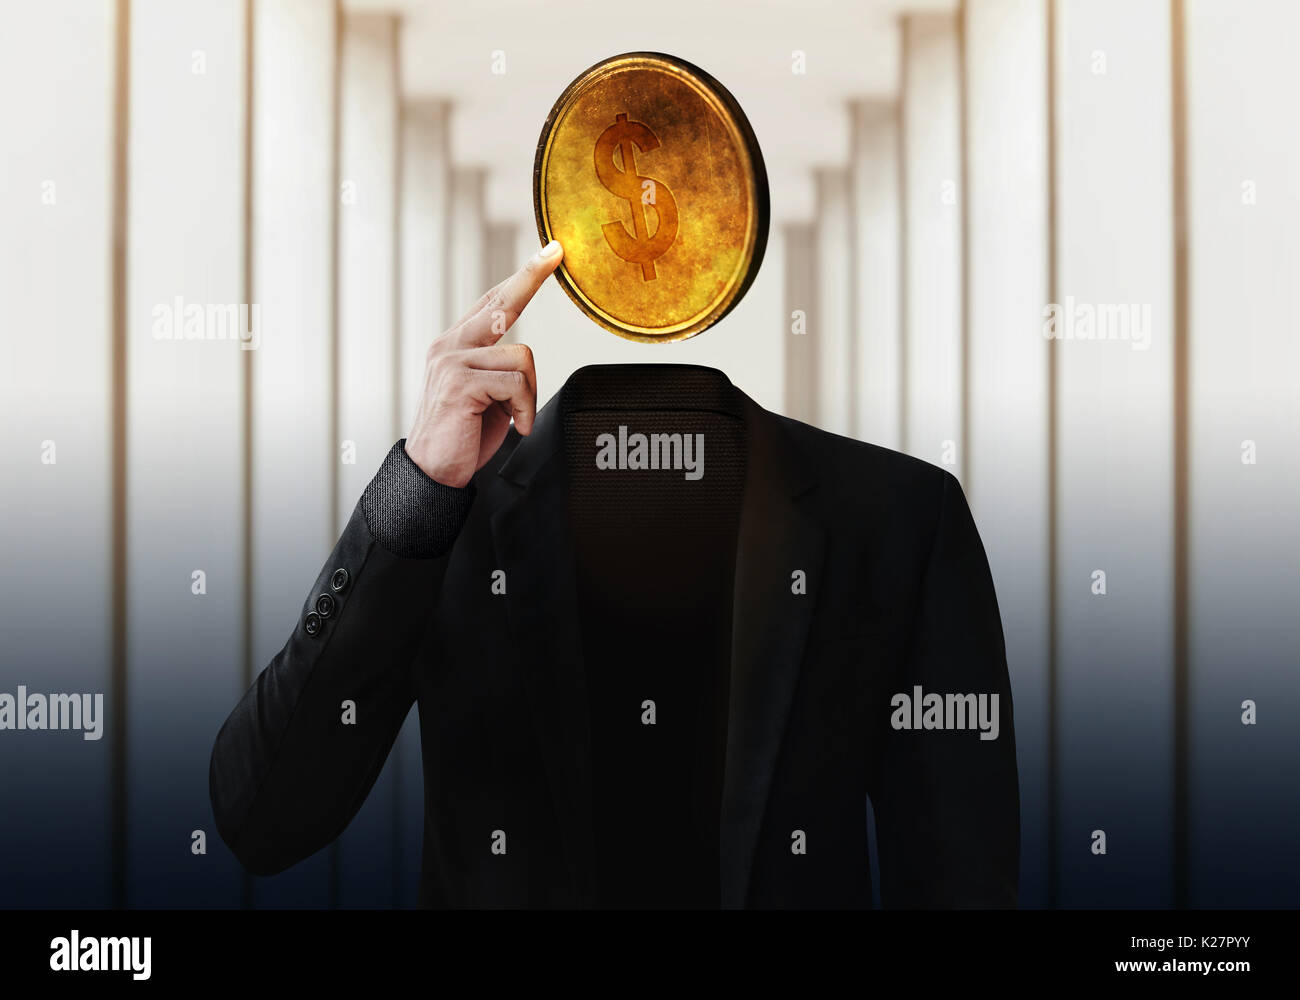 Businessman with Money Head, Thinking for Success or Profit in Business, Finger on Golden Coin, Photo Manipulation - Stock Image